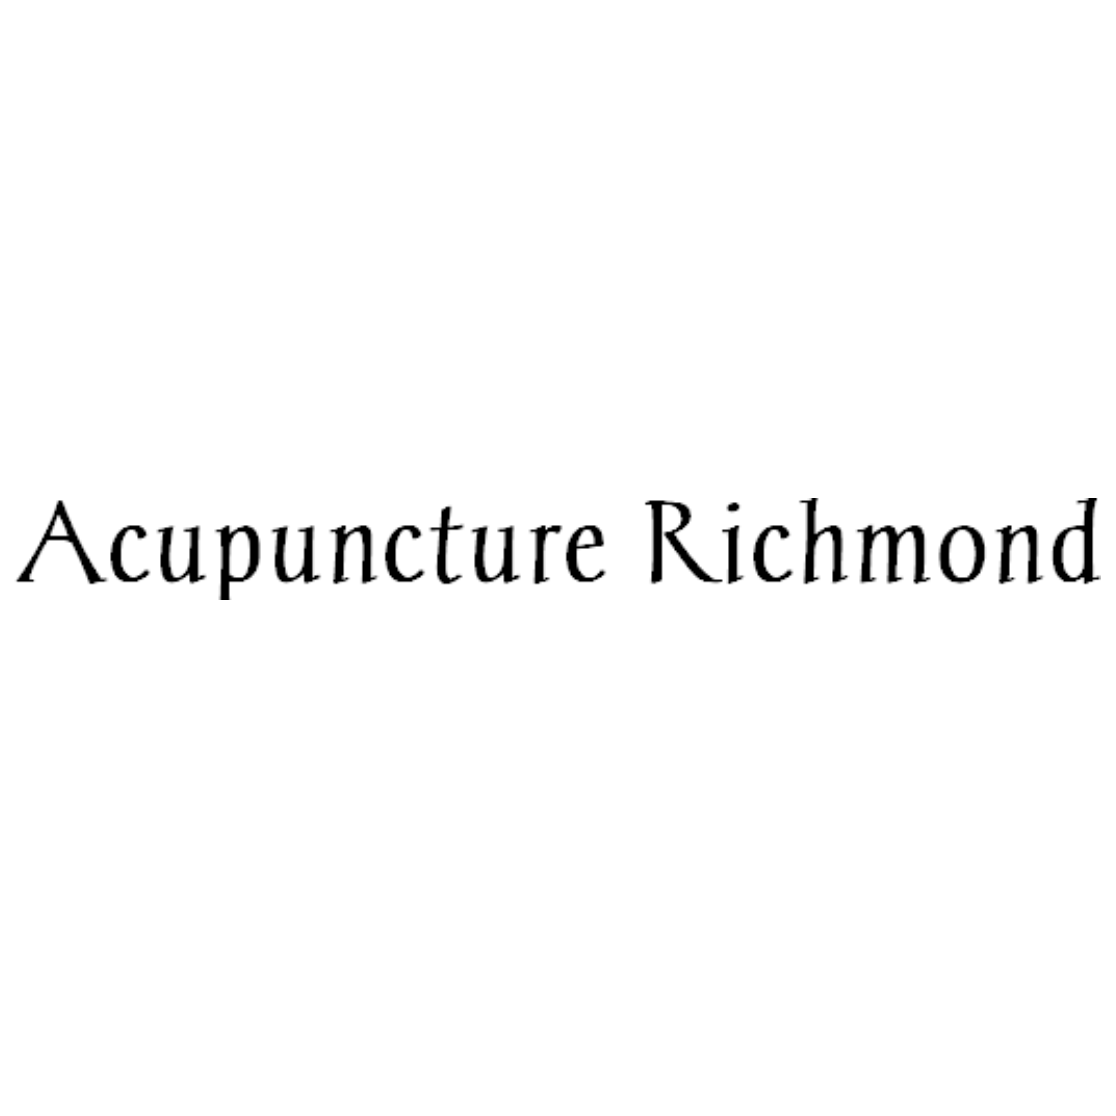 accupuncture.png